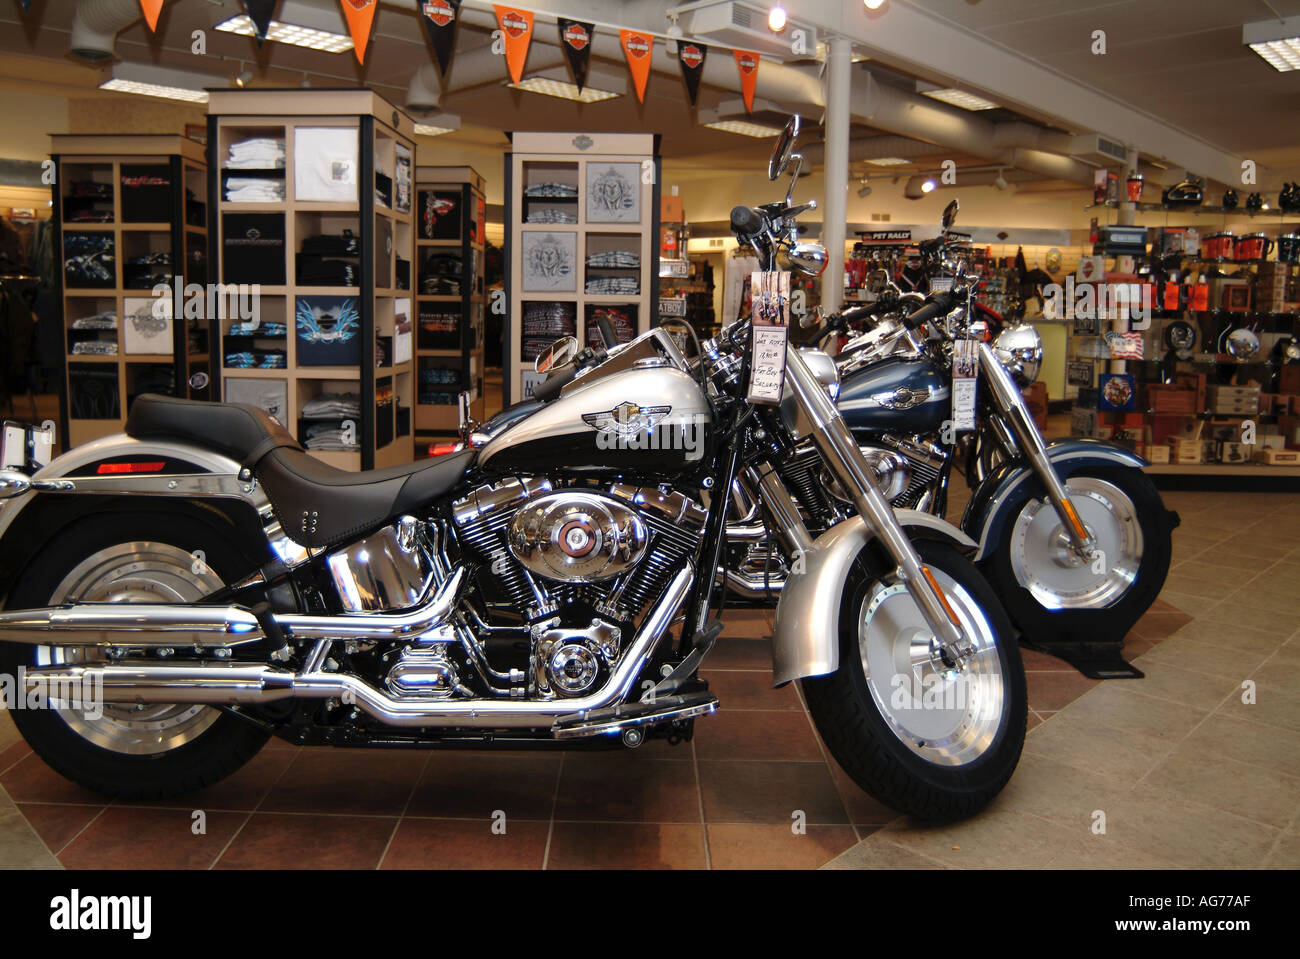 harley davidson dealership motorcylcle motor bike. Black Bedroom Furniture Sets. Home Design Ideas